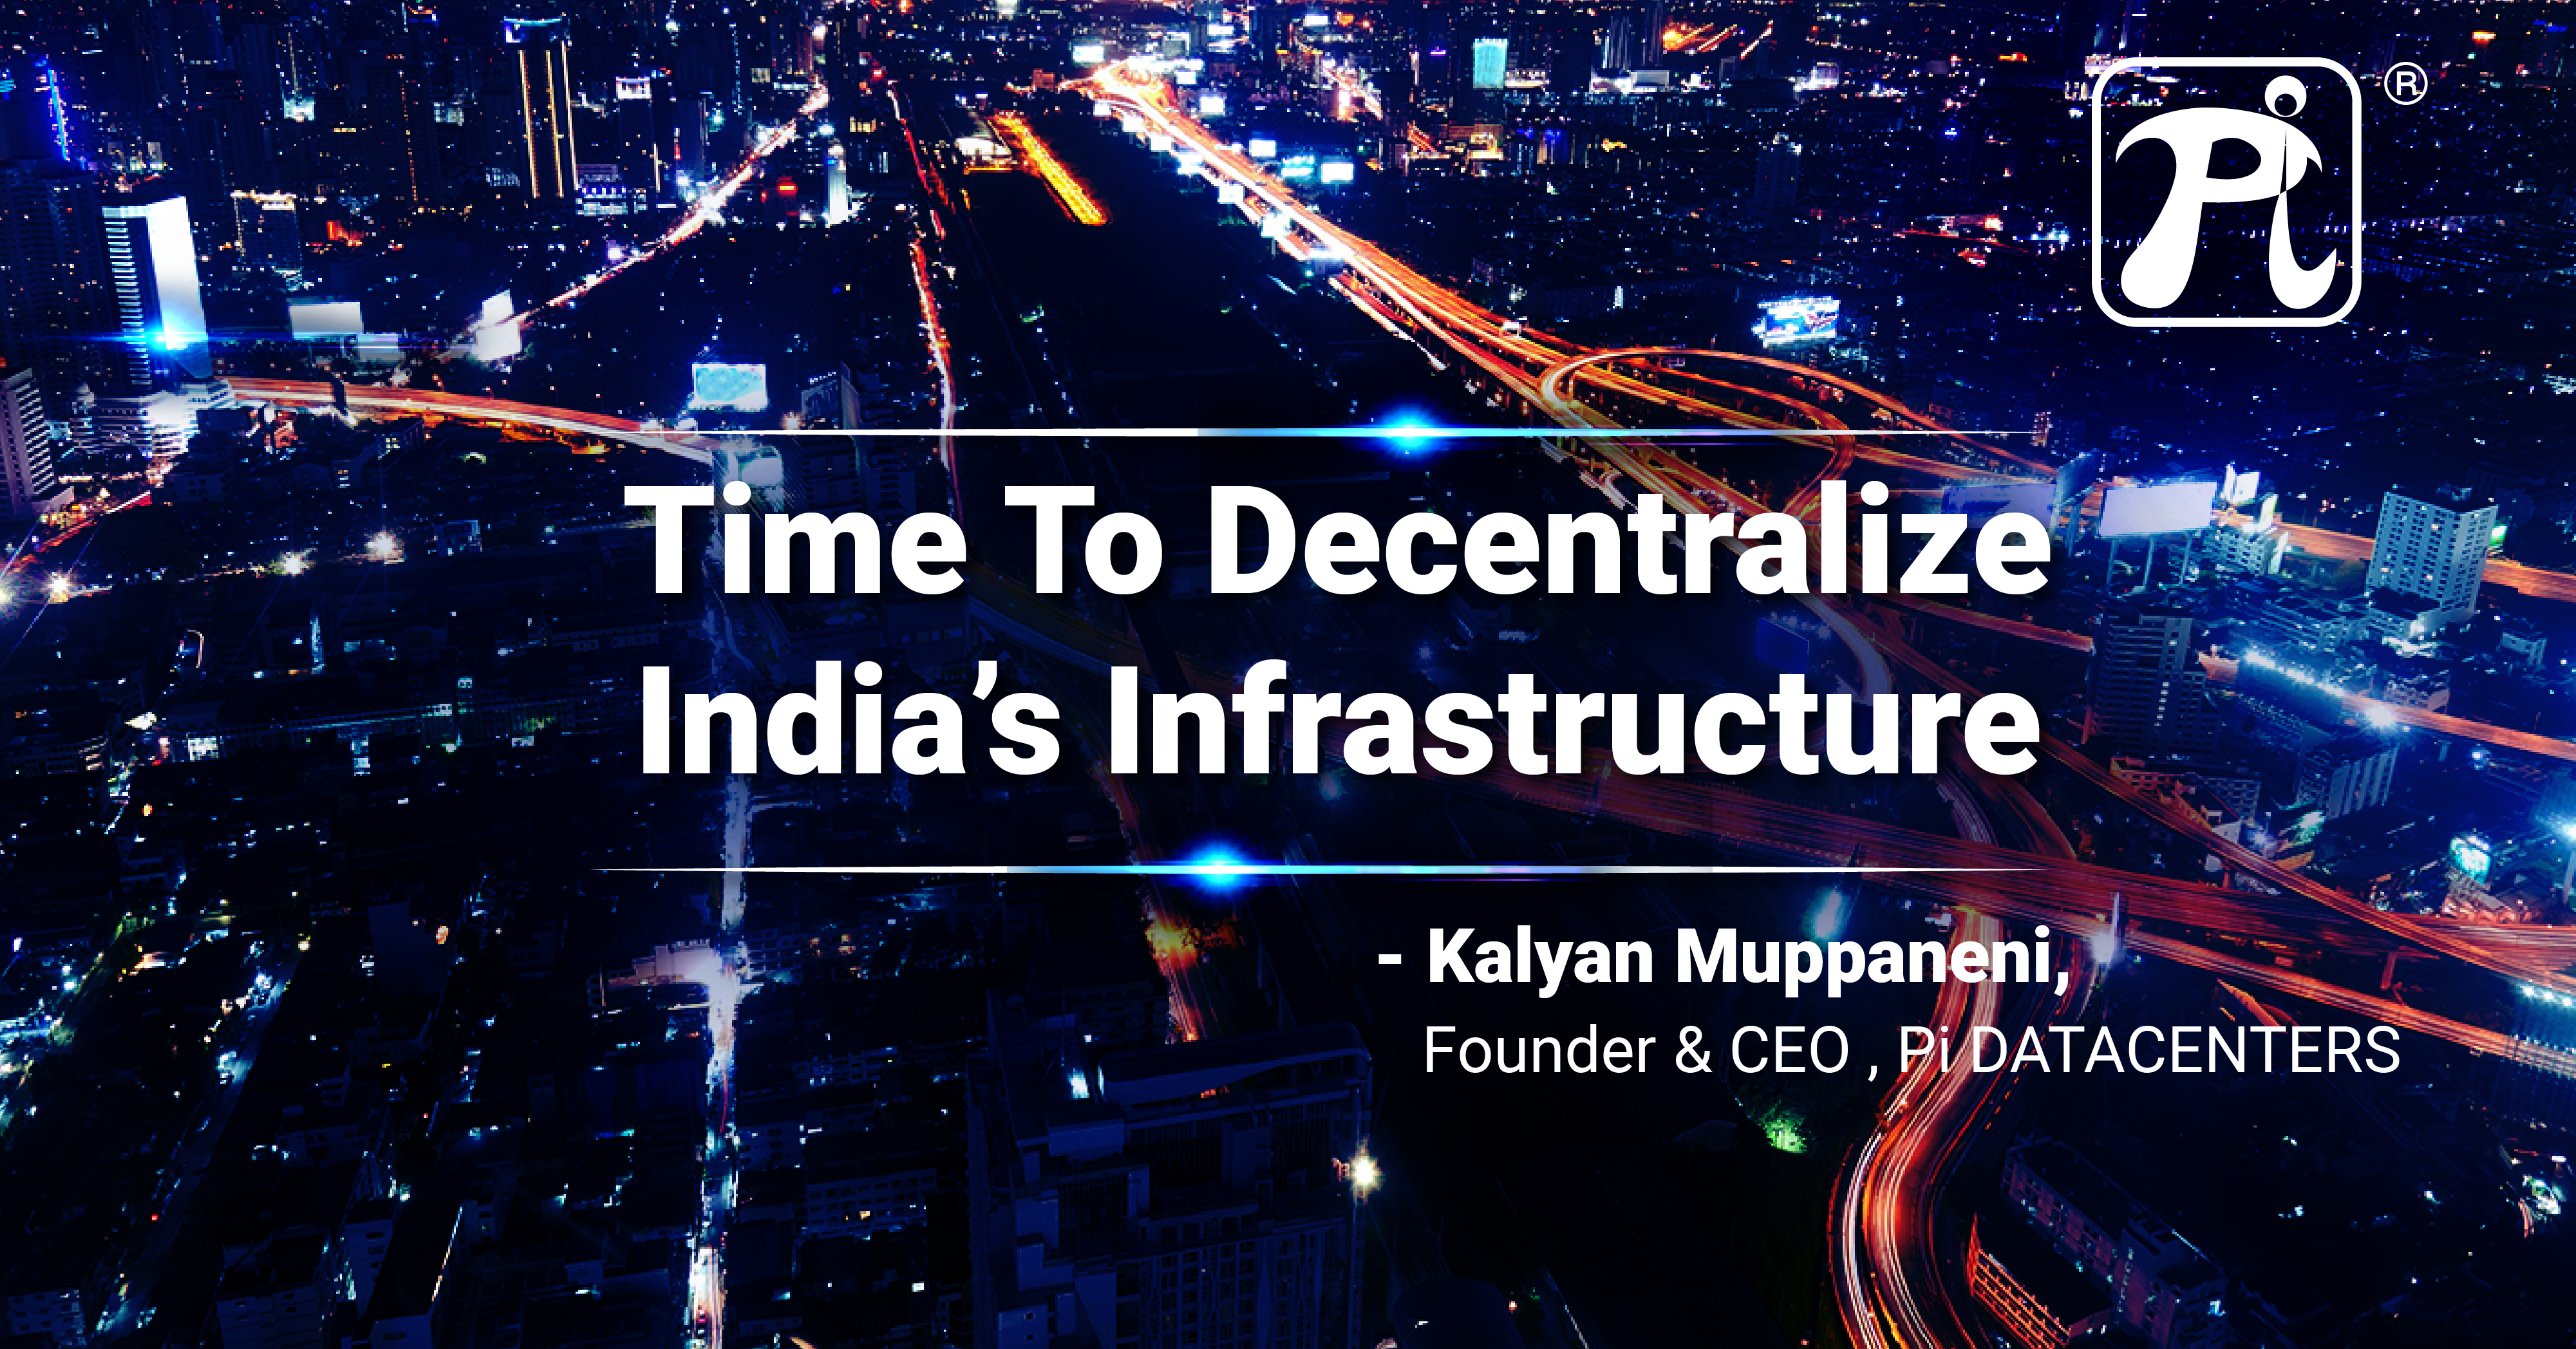 Time to Decentralize India's Infrastructure